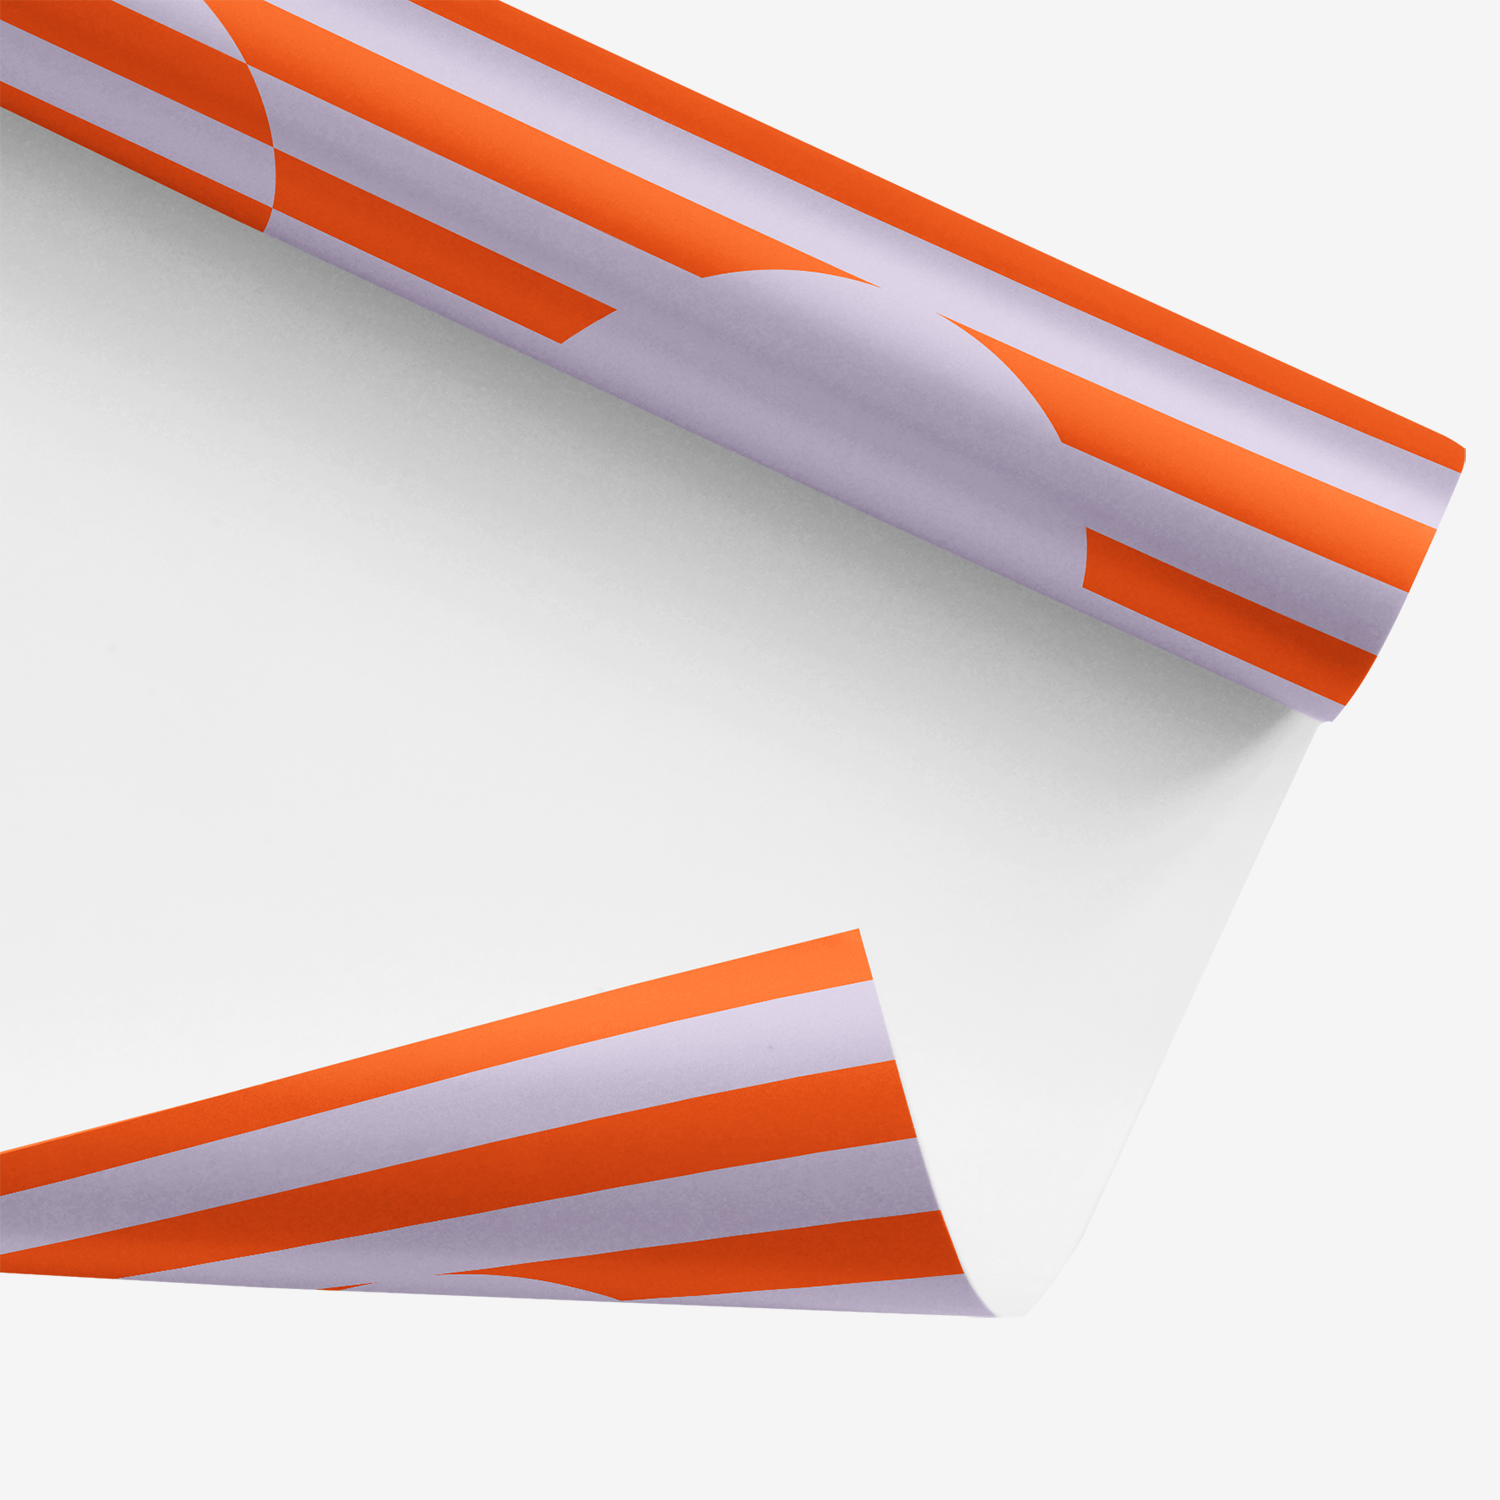 white underside of bold orange chromasect geometric wrapping paper